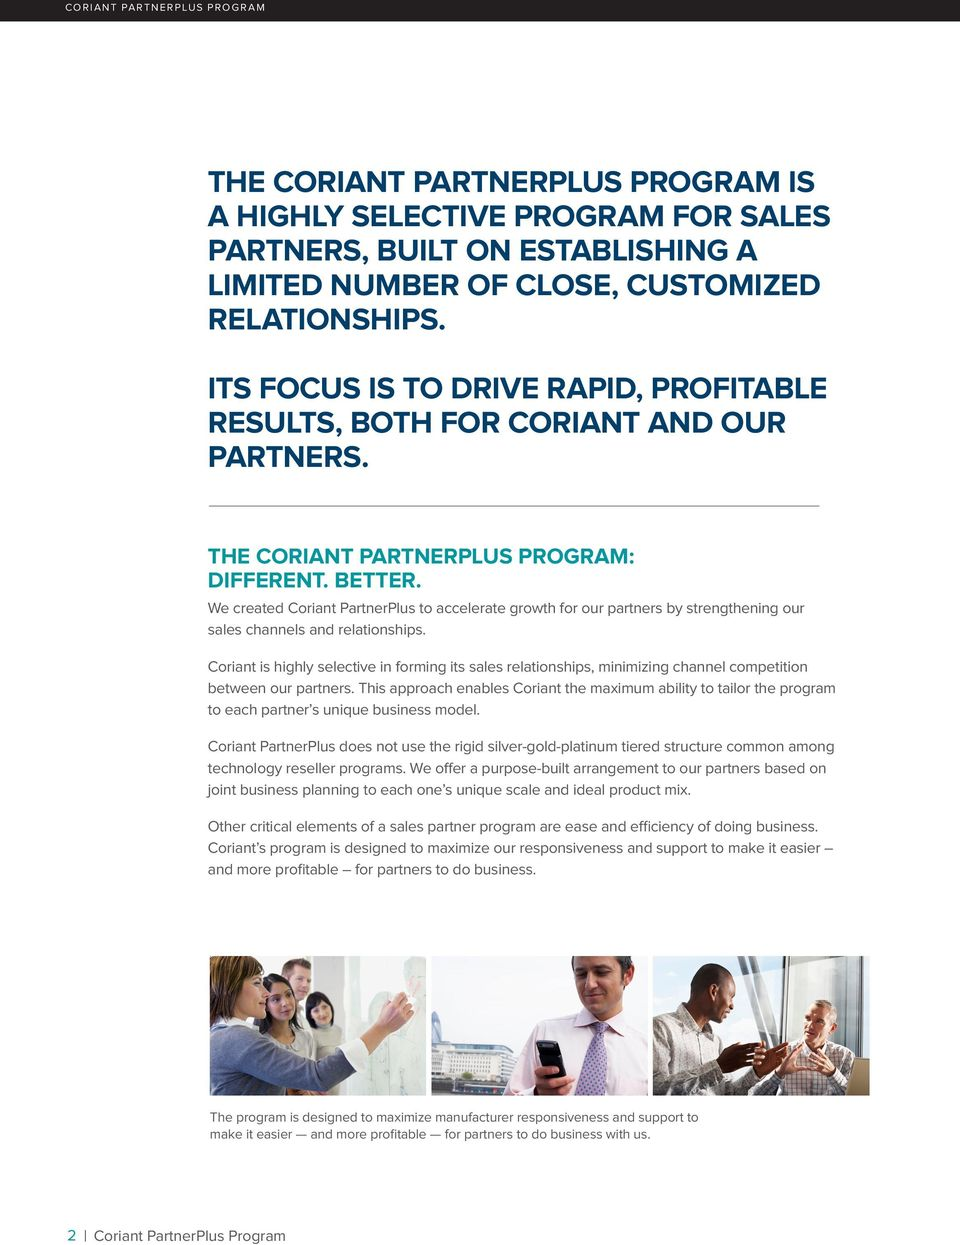 We created Coriant PartnerPlus to accelerate growth for our partners by strengthening our sales channels and relationships.